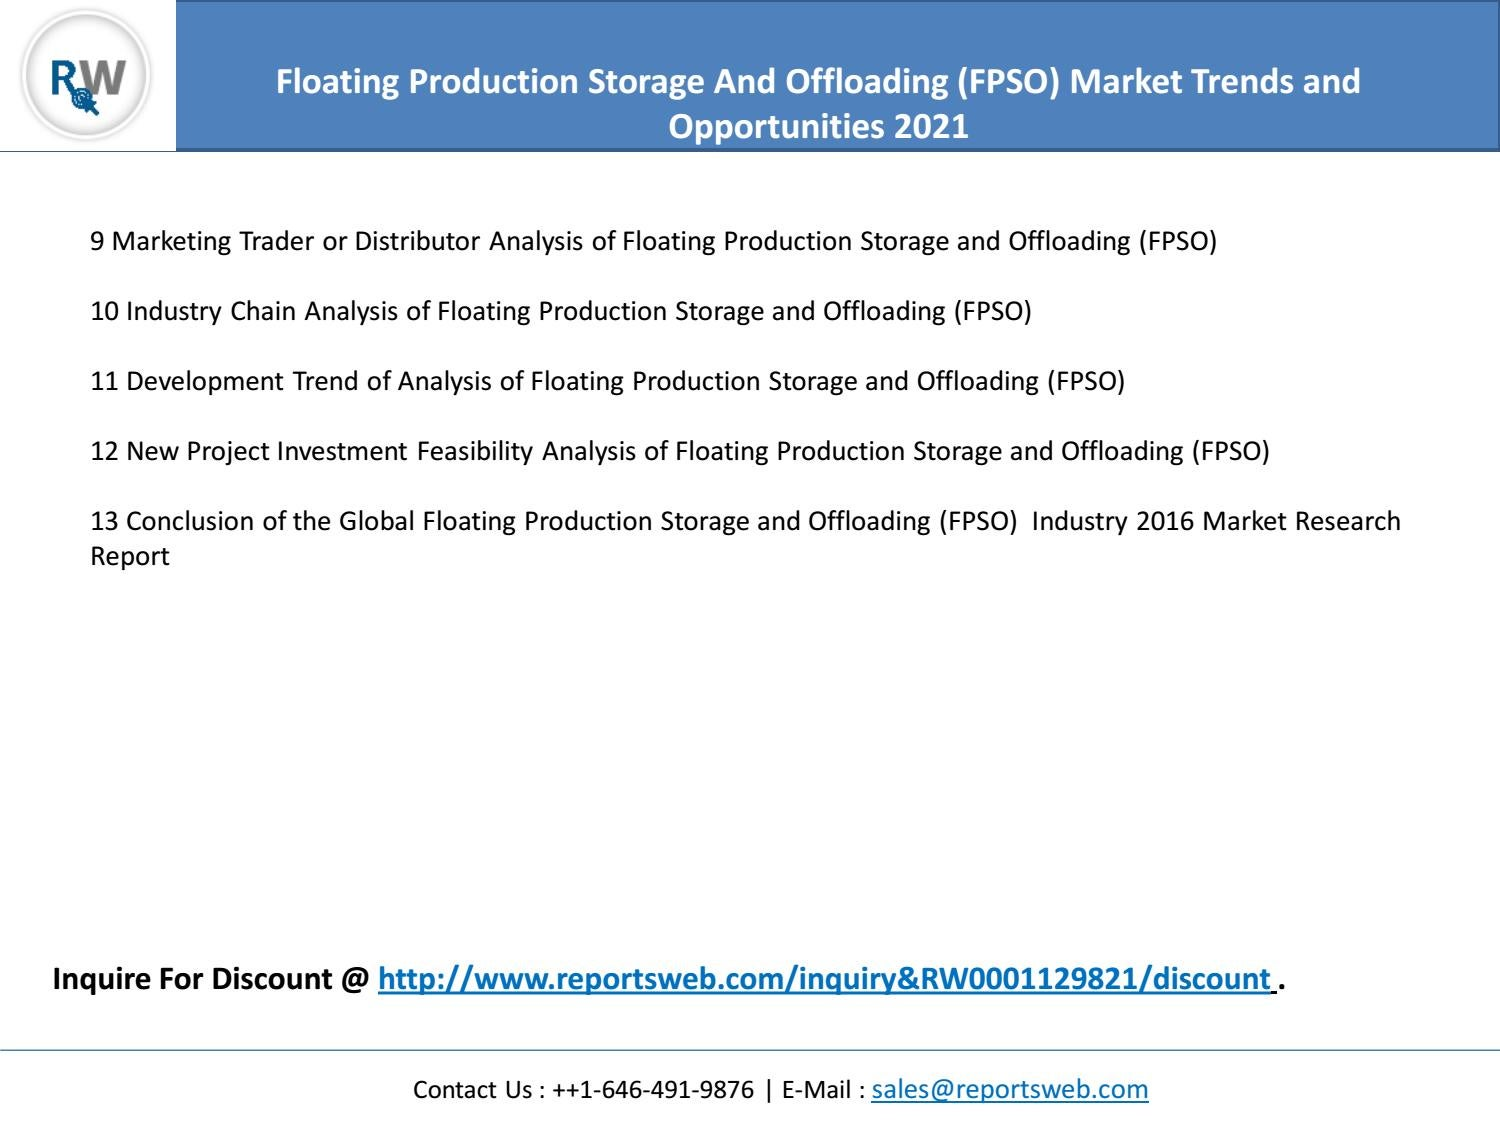 Global Floating Production Storage And Offloading (FPSO